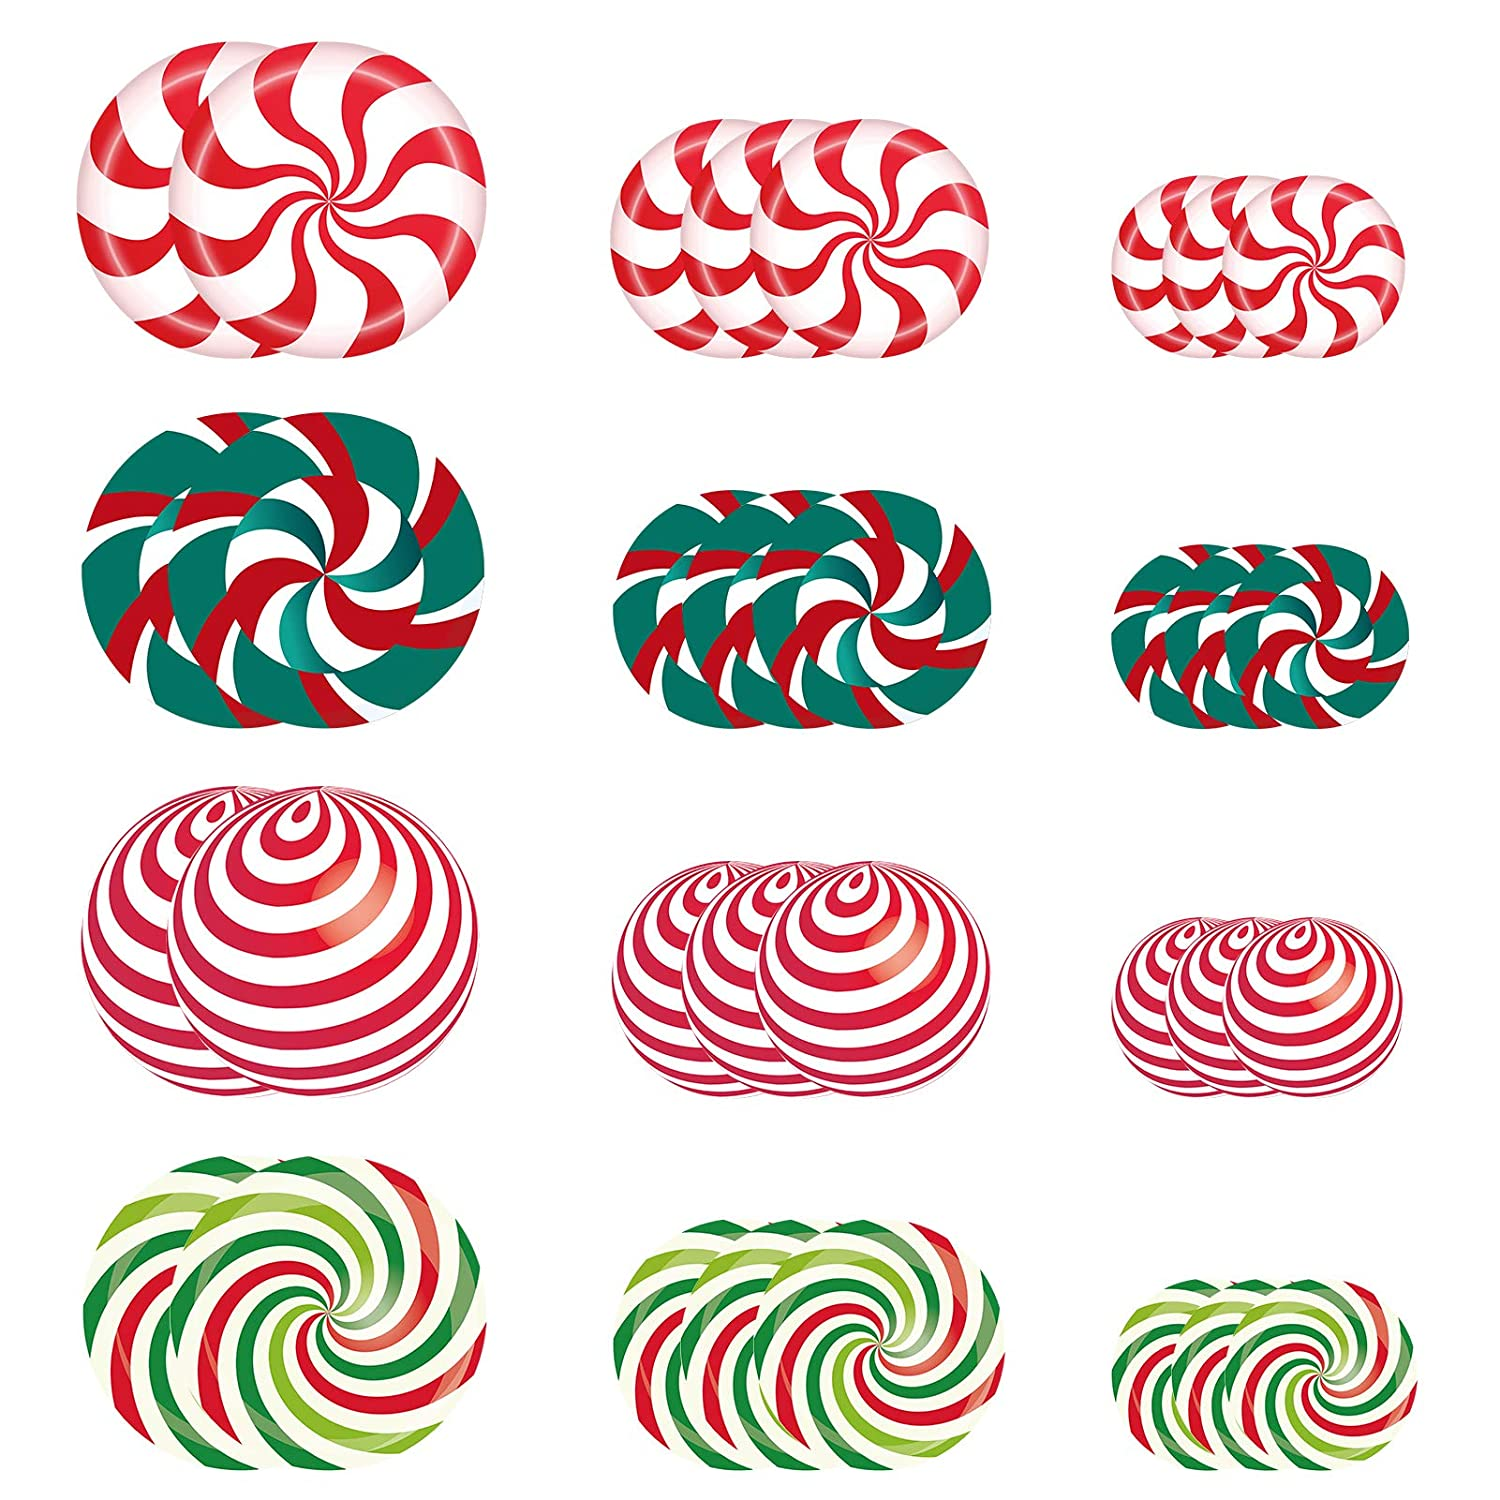 32 Pcs Christmas Candy Papermint Floor Decals Stickers-11